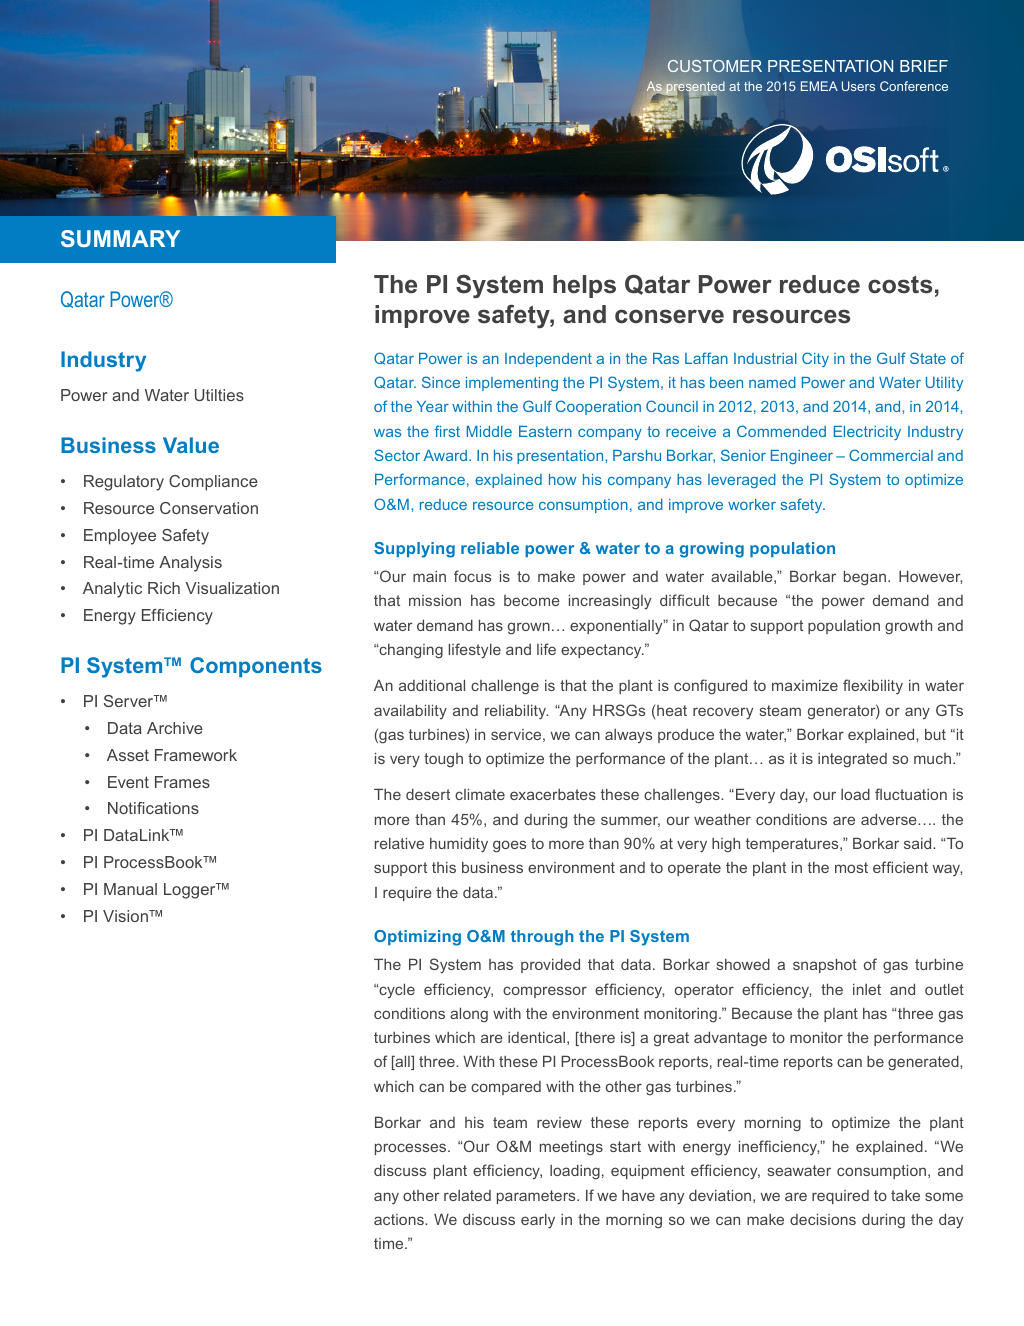 Case Study] Qatar Power Reduces Costs, Improves Safety, and